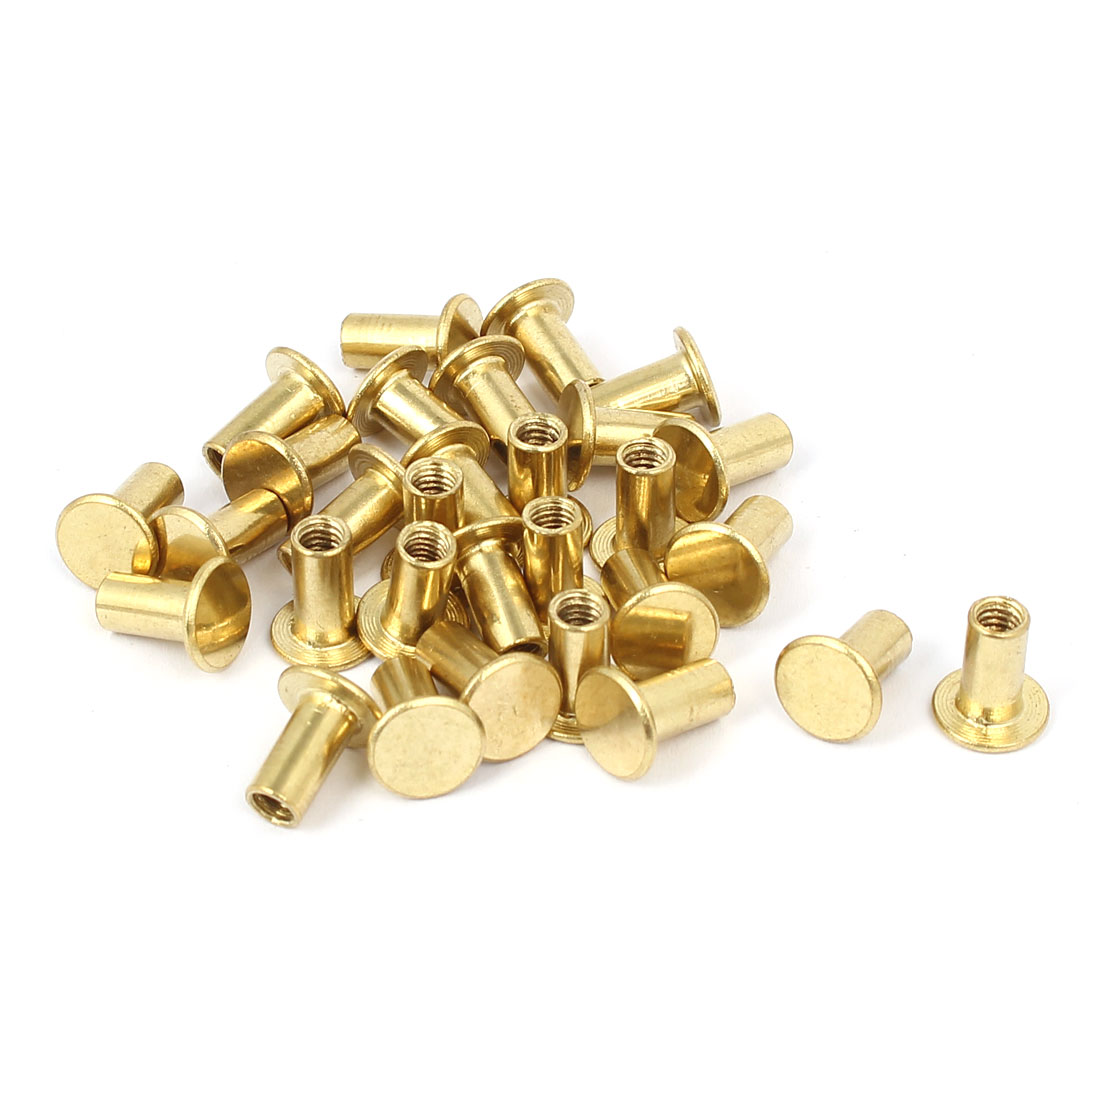 Photo Album Metal Brass Plated Binding Screw Post Barrel Nut 5mmx10mm 30pcs